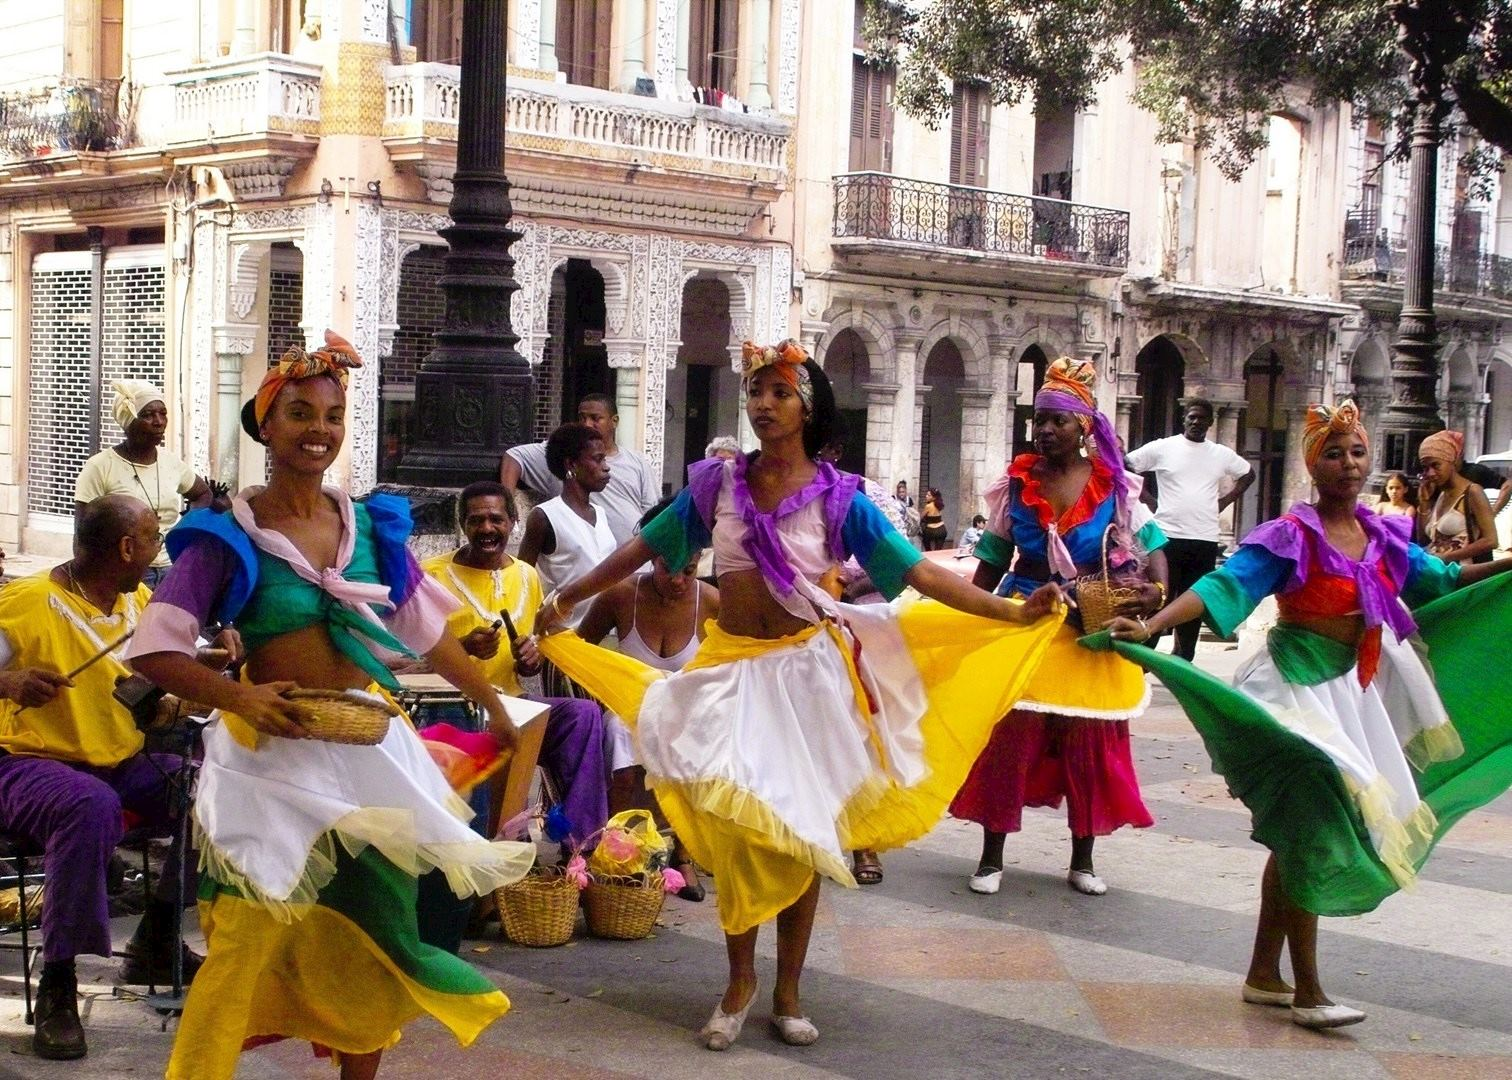 the culture of cuba See & do 20 must-visit attractions in havana, cuba make the most of your trip to cuba and visit these best 20 attractions the city of havana has to offer.